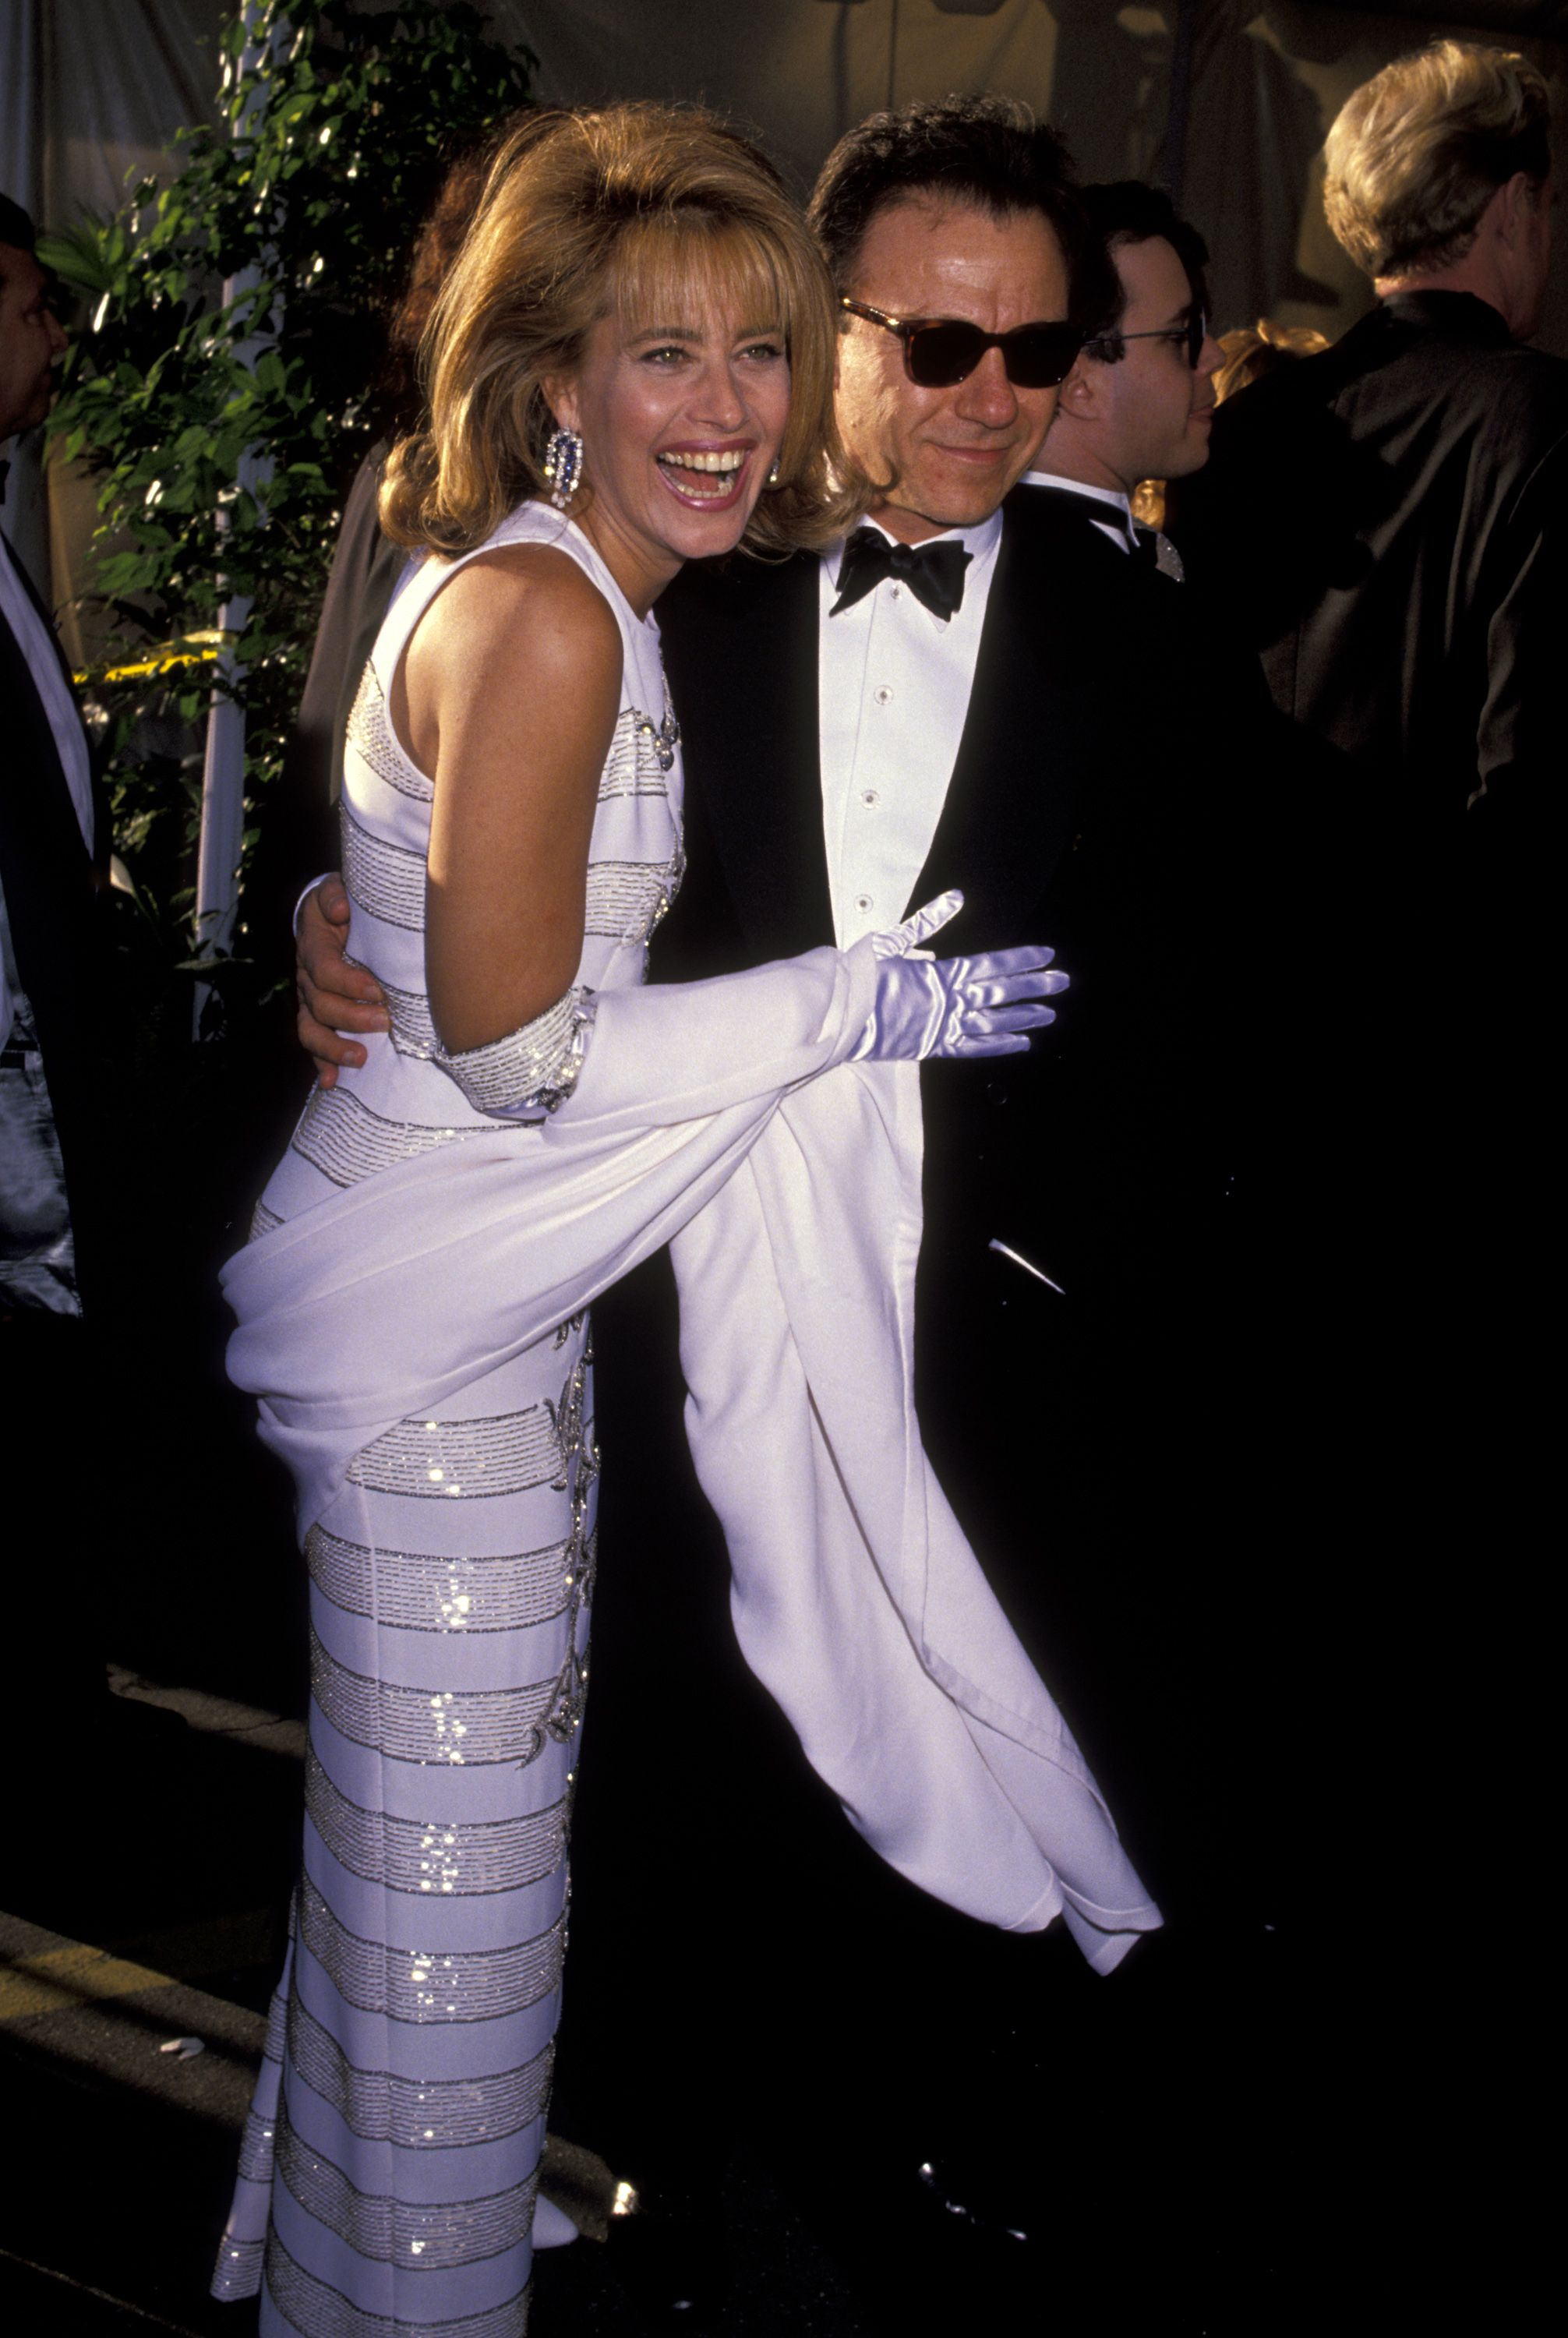 Lorraine Bracco and Harvey Keitel at the 63rd Annual Academy Awards in 1991 in Los Angeles   Source: Getty Images